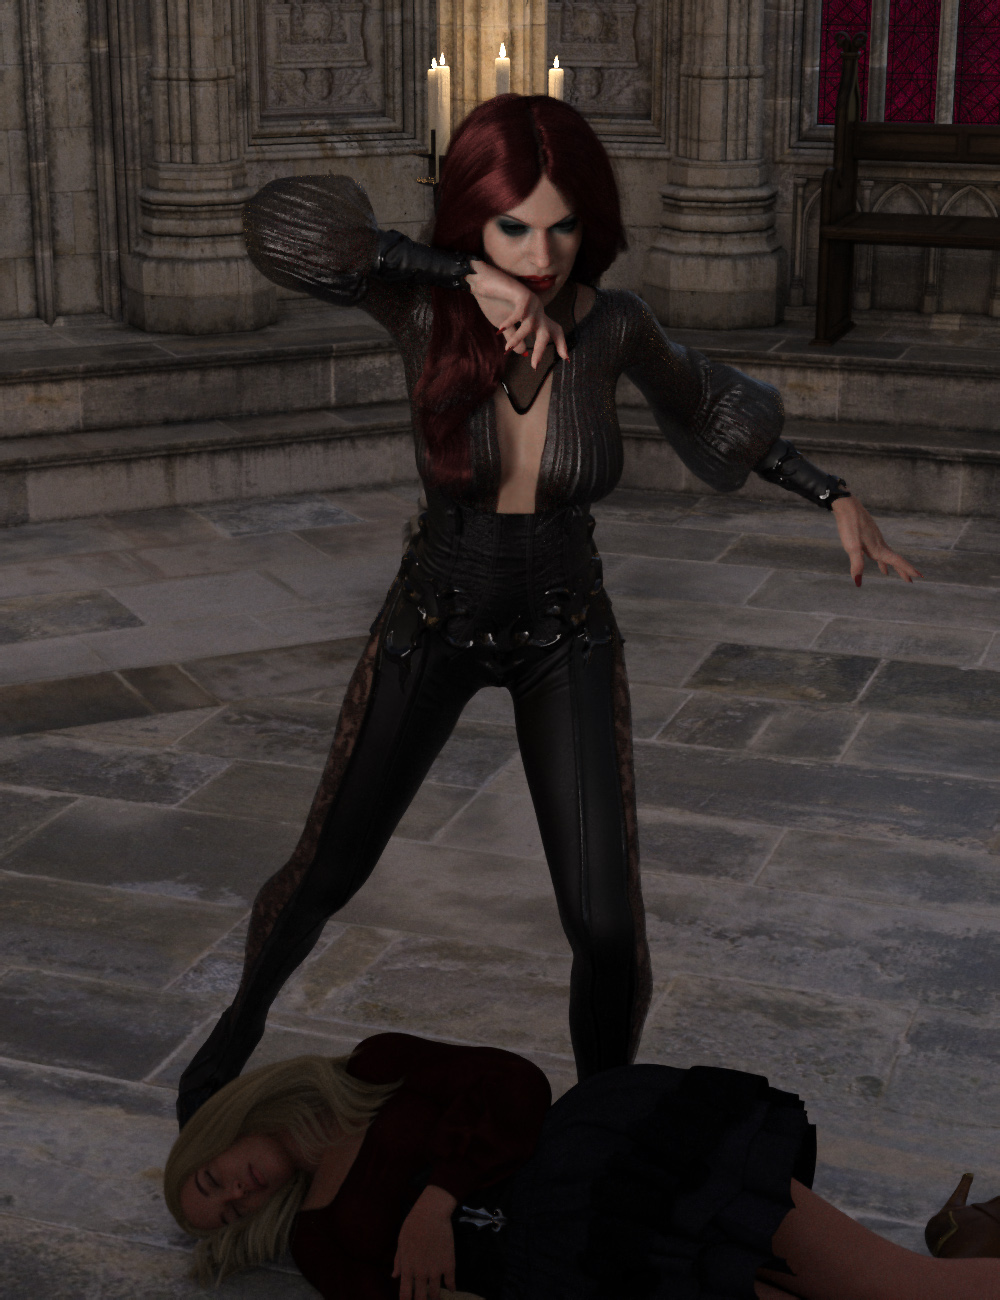 Vampiresque Poses for Genesis 8 Female by: Ensary, 3D Models by Daz 3D